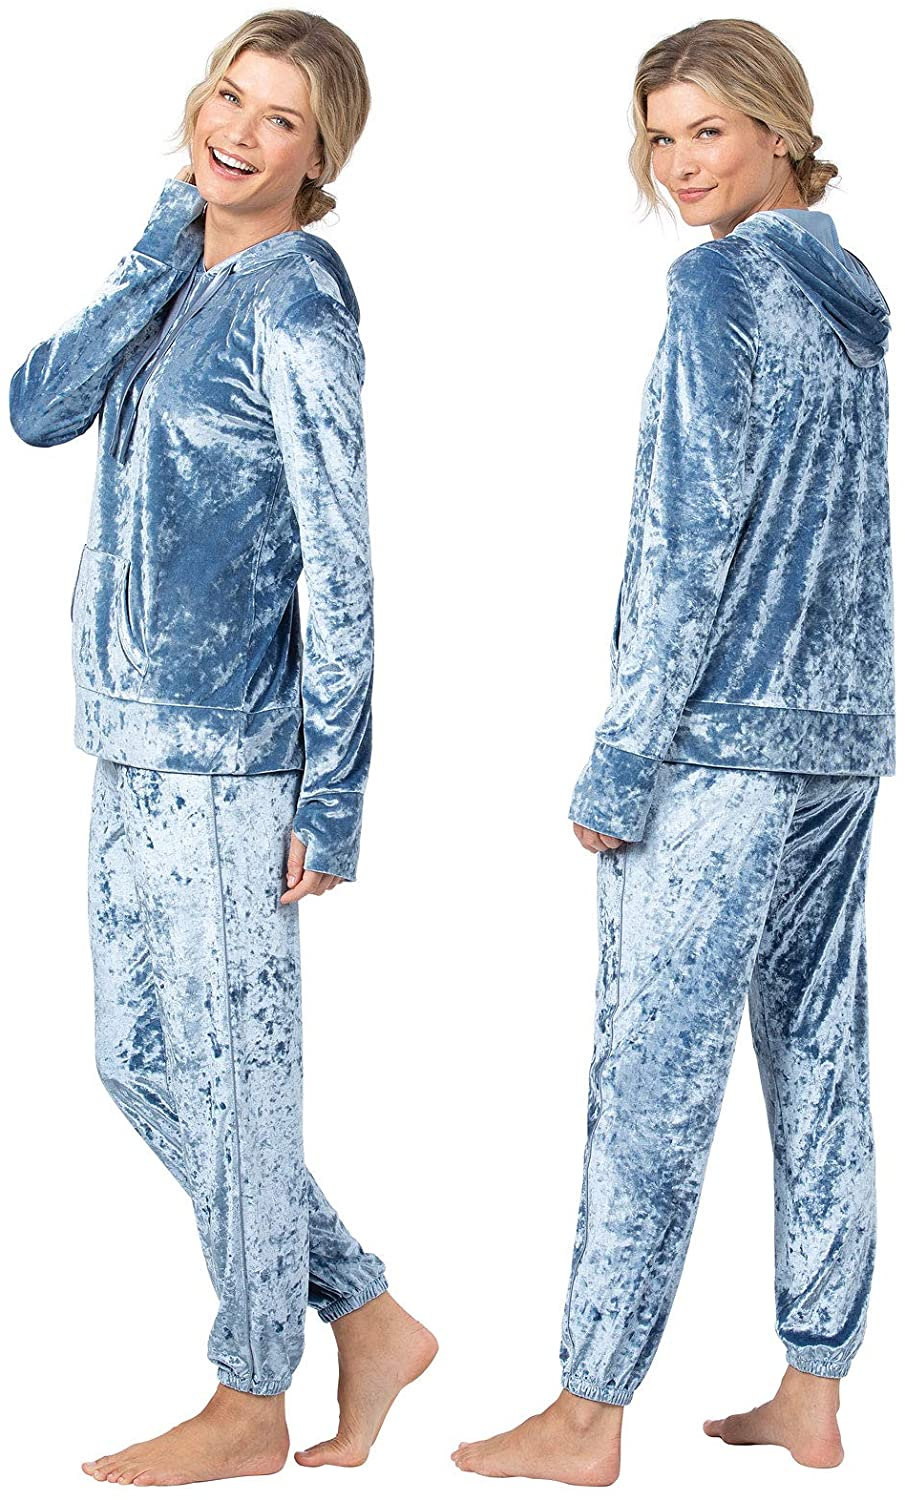 PajamaGram Womans Pajamas Plush Velvet, $21 @amazon.com